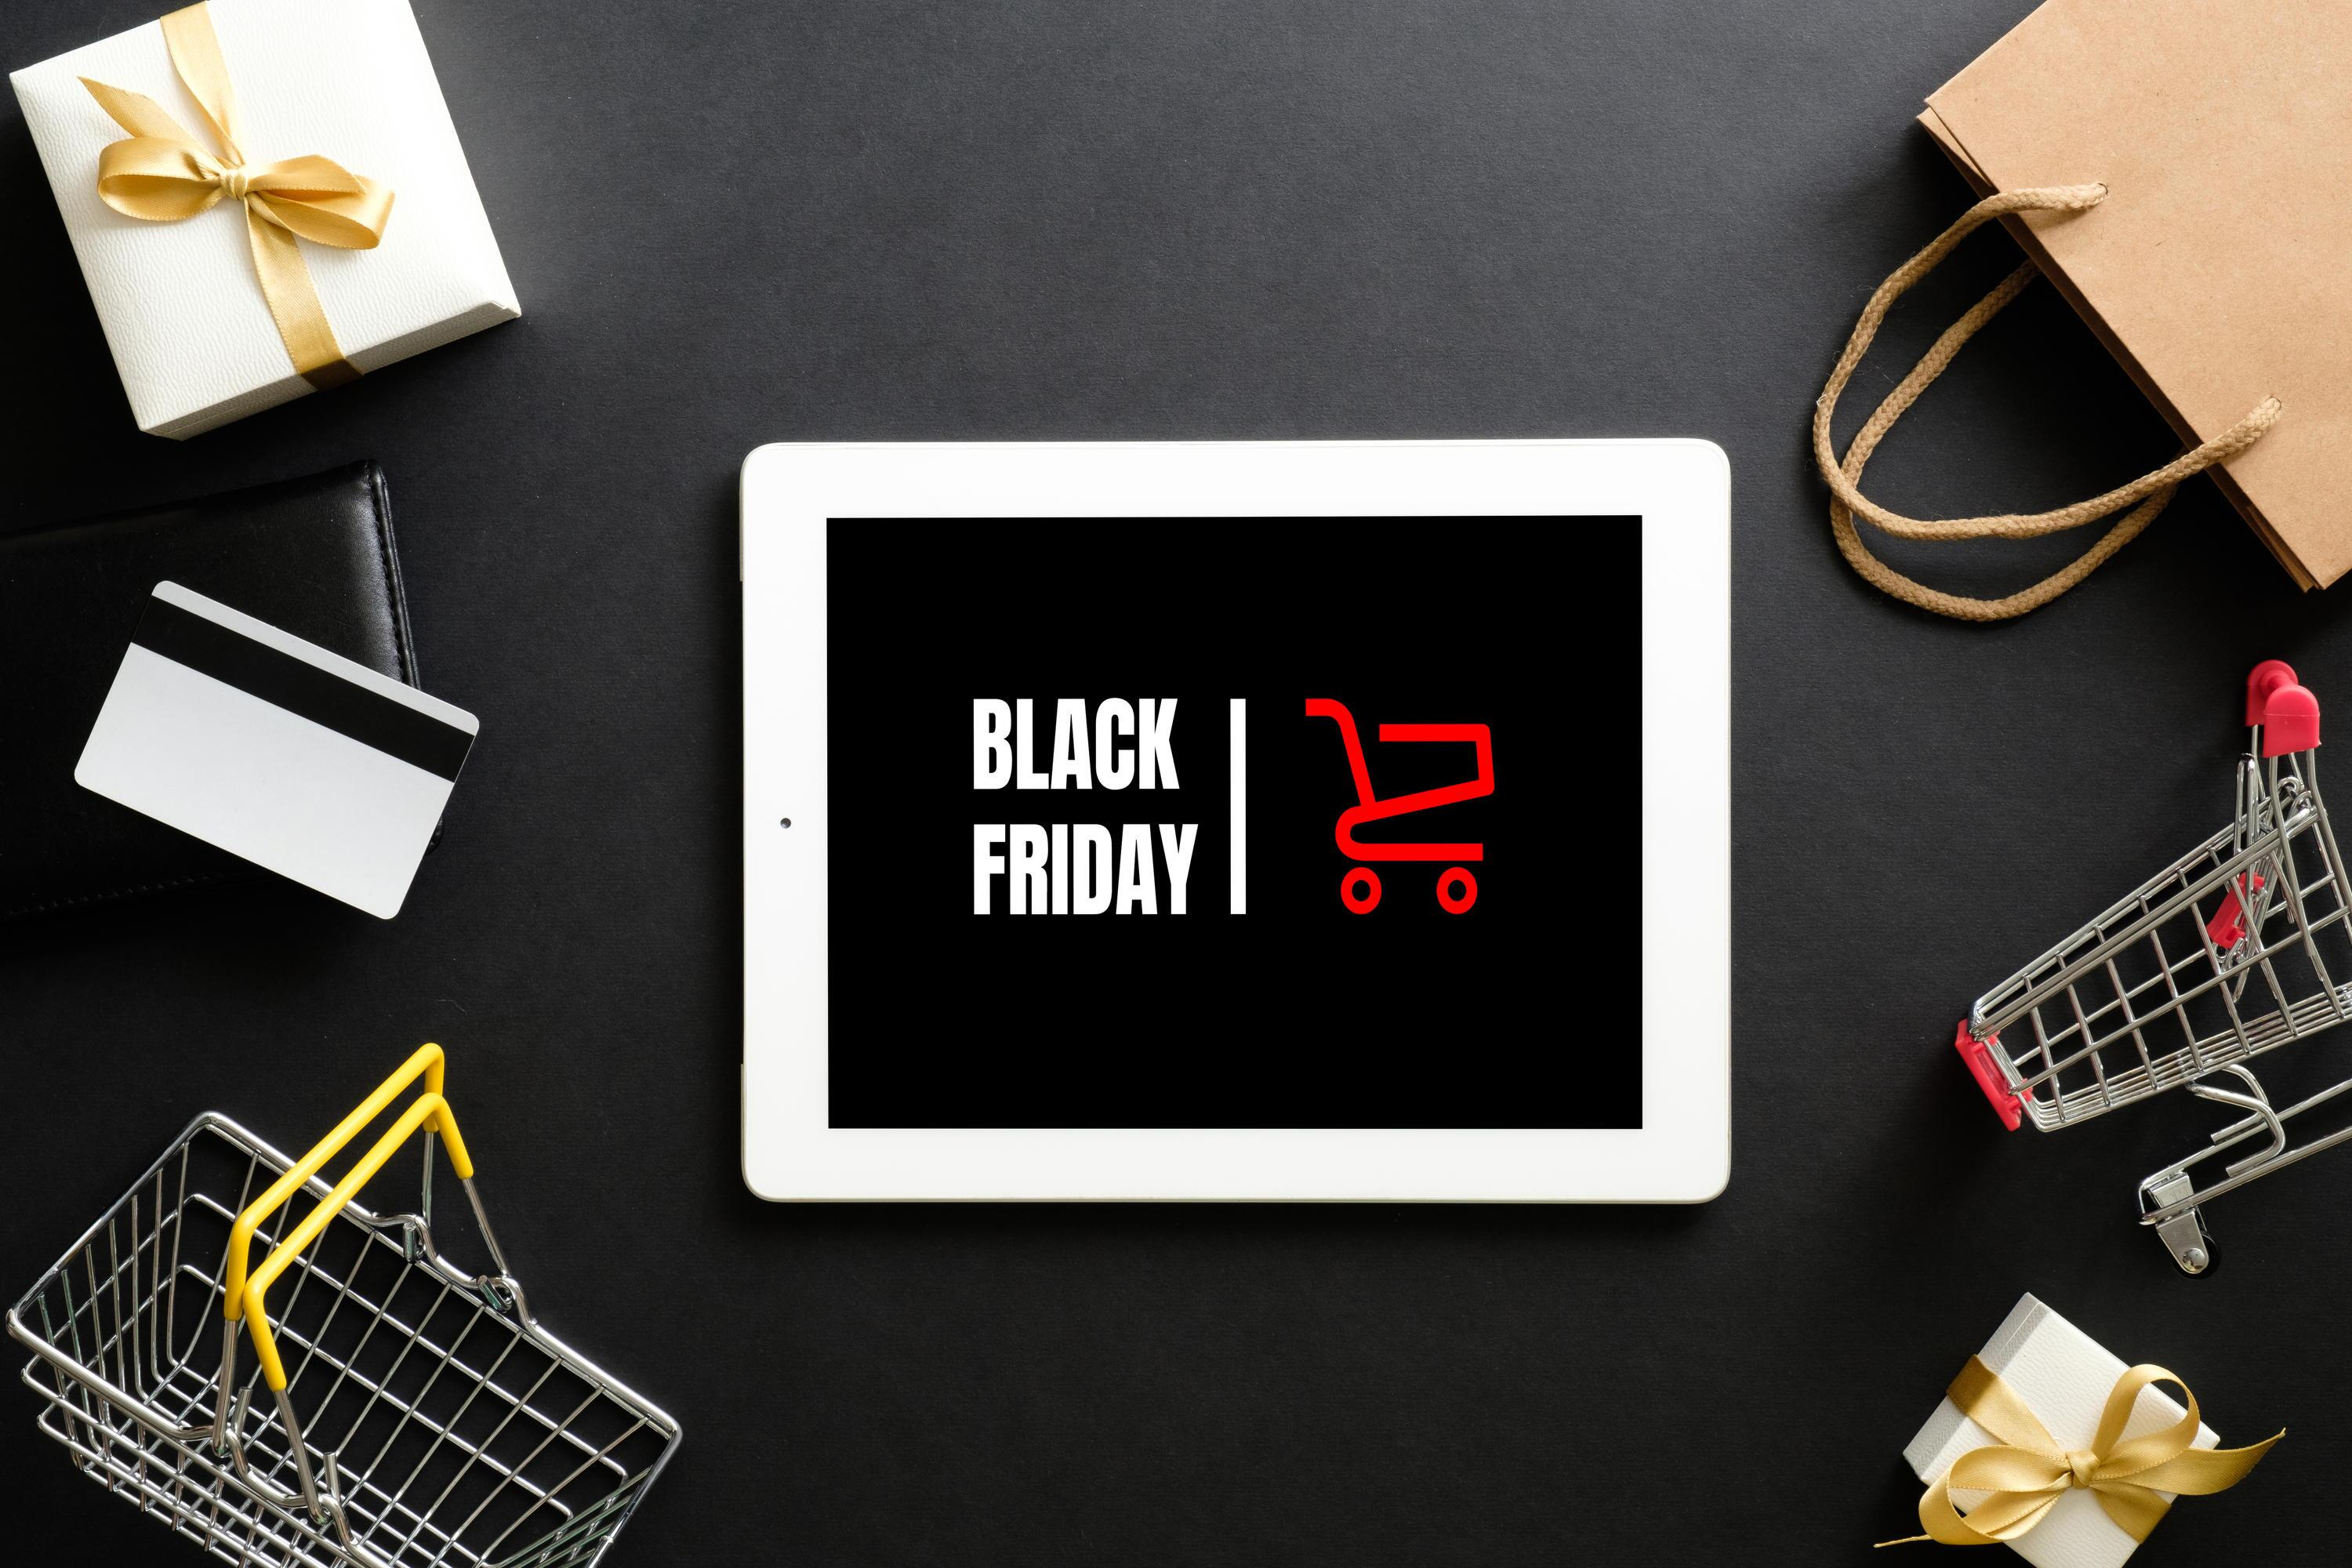 Bild zu Black Friday Week, 2020, Cyber week, Cyber Monday, Black Friday, Schnäppchen, Shopping, Amazon